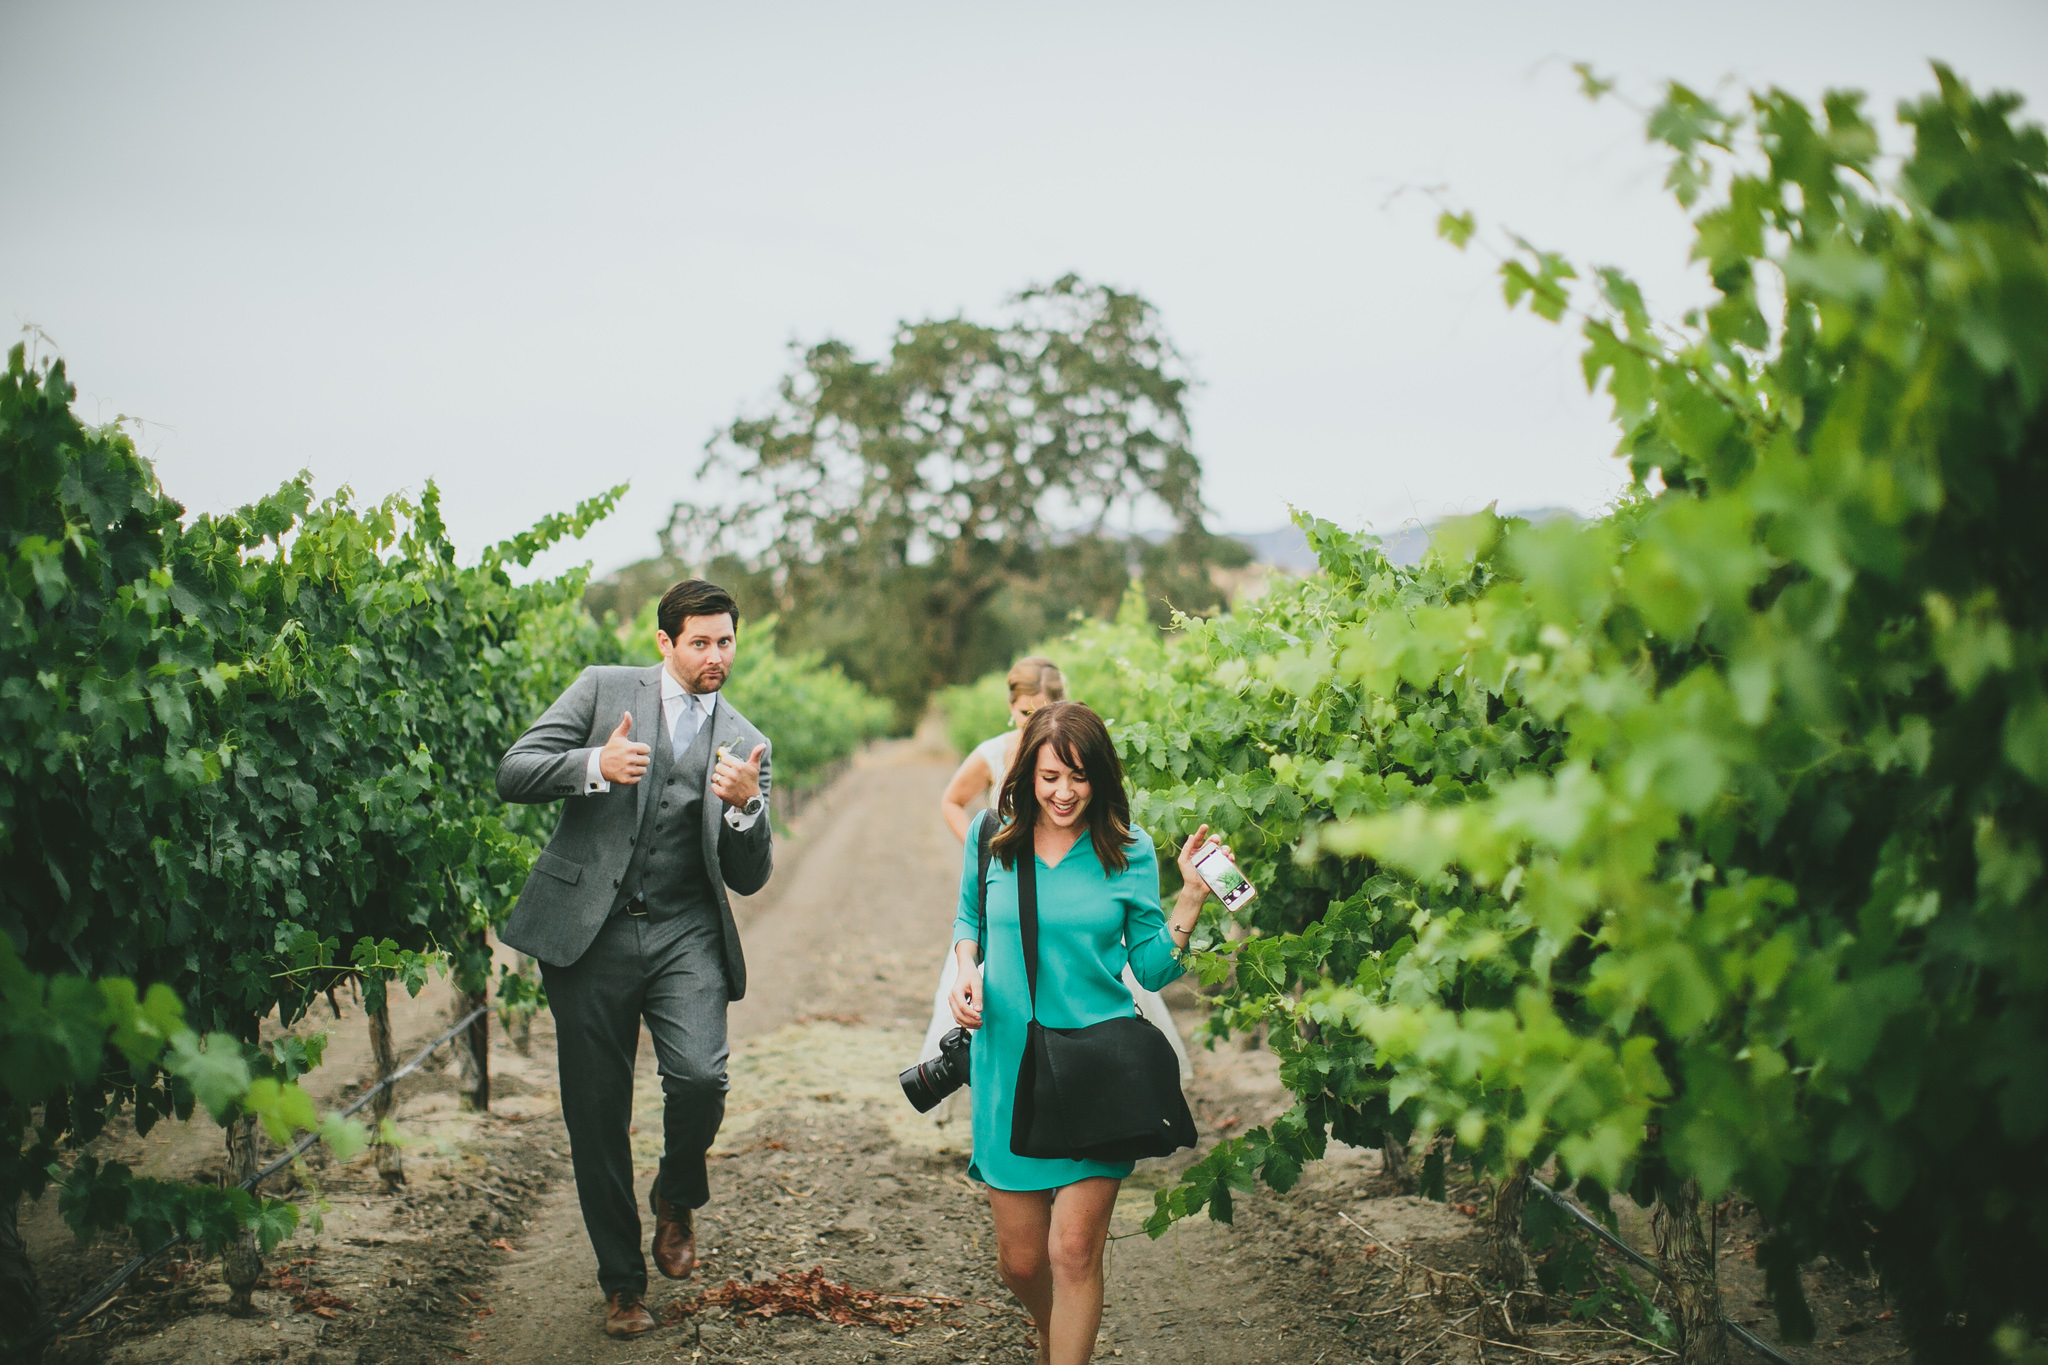 whitney+parker-WEB_BLOG-144